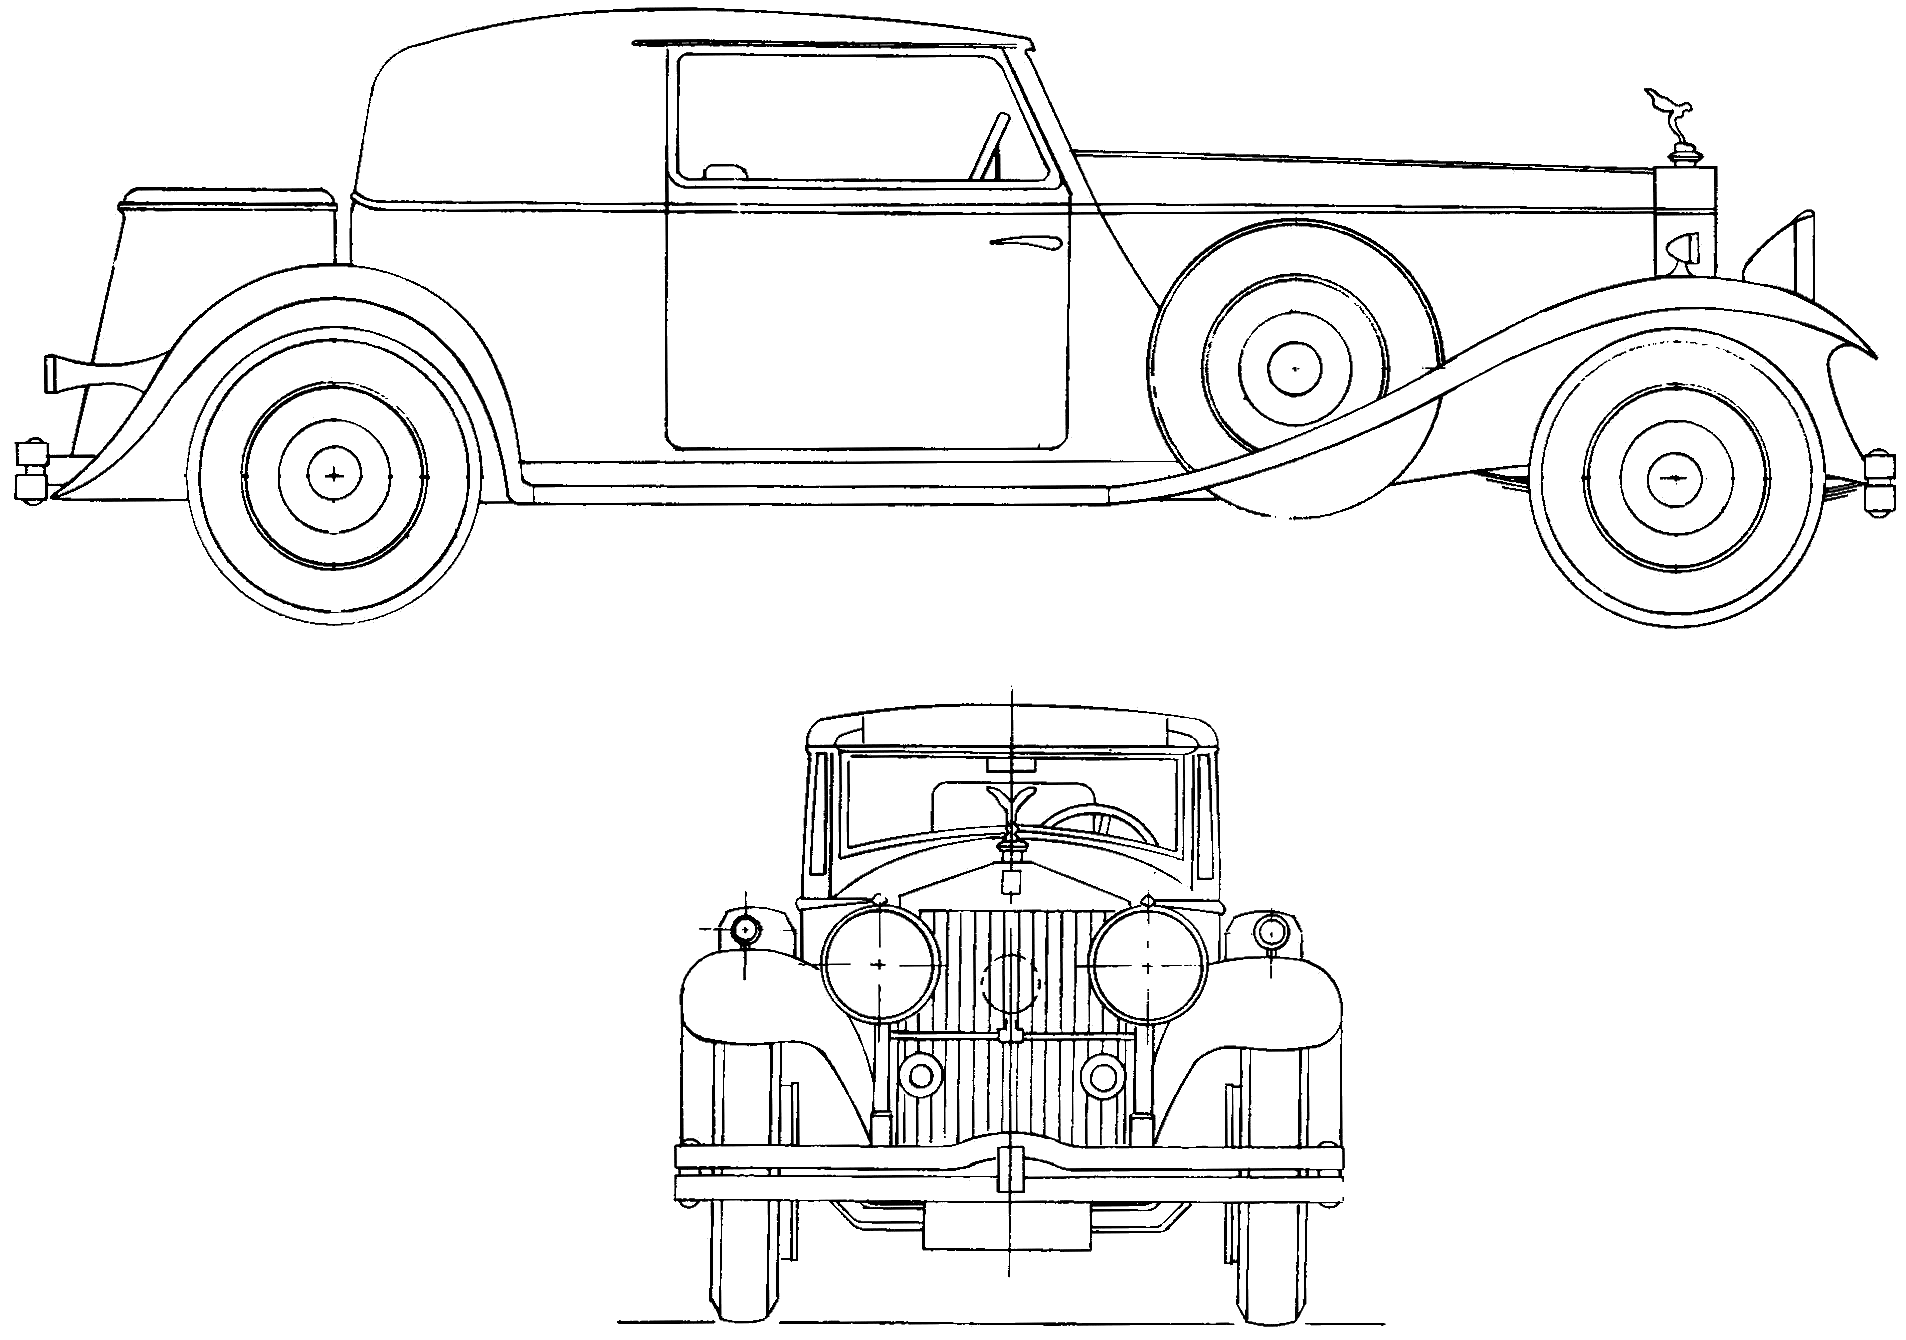 Rolls-Royce Phantom II blueprints